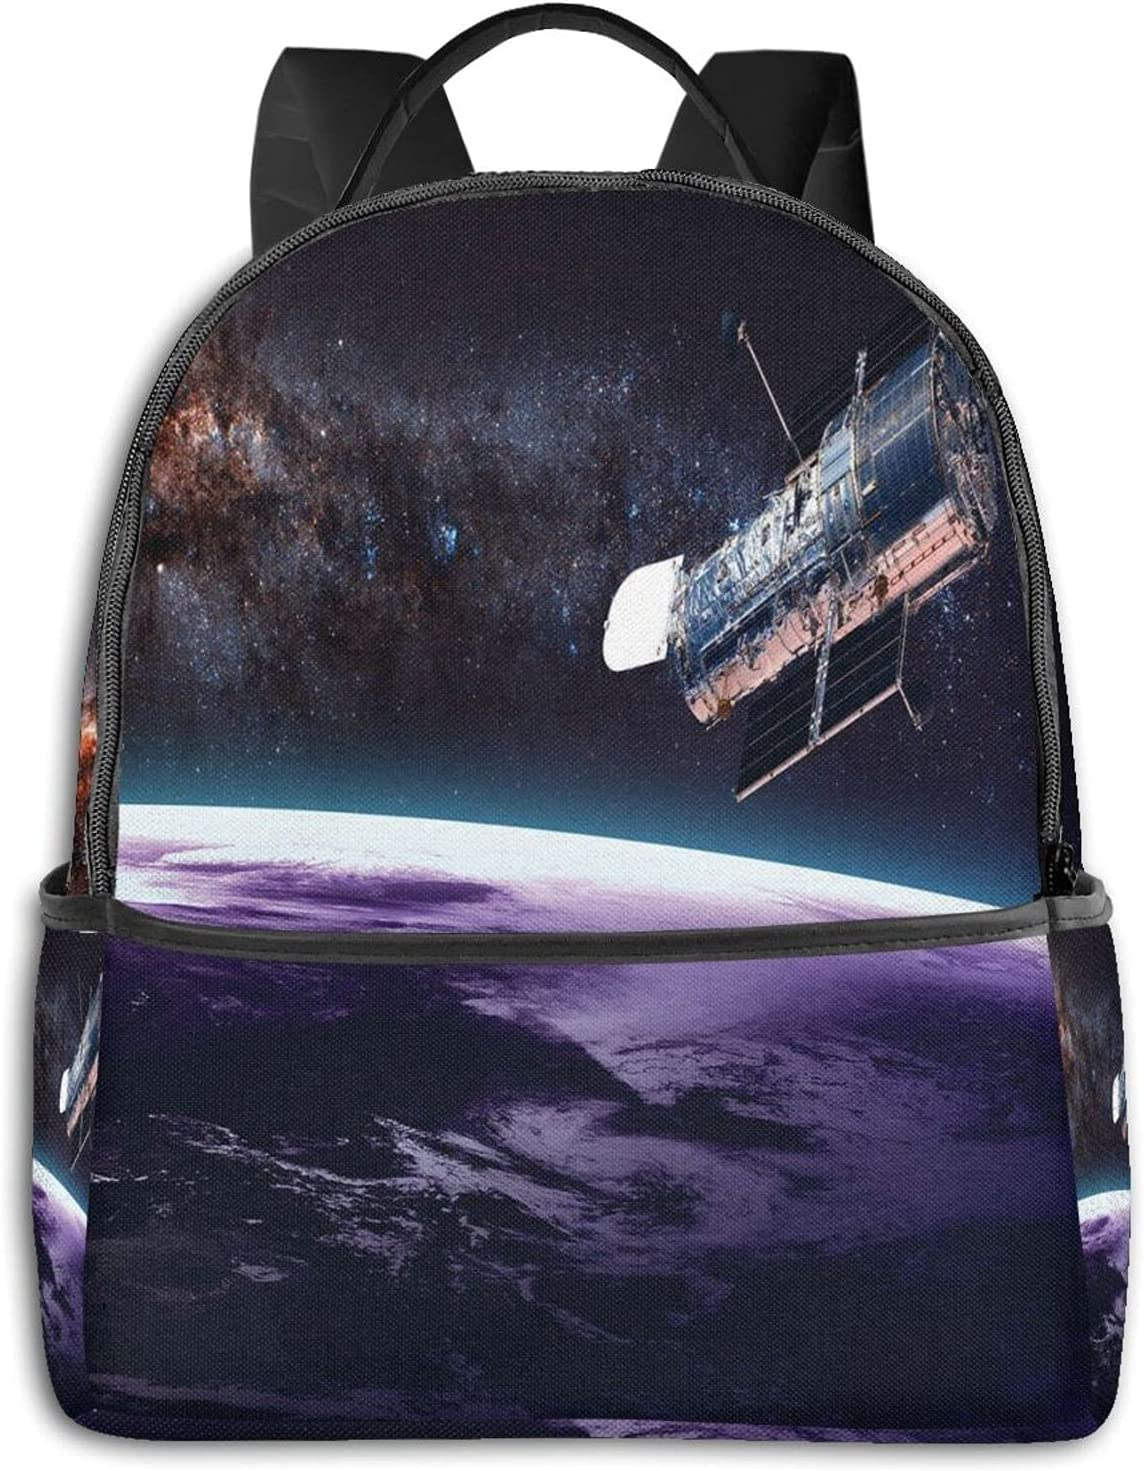 Real Life Image Shot In Max 79% OFF Space Shuttle Take Spaceship Beauty products Futuris Off